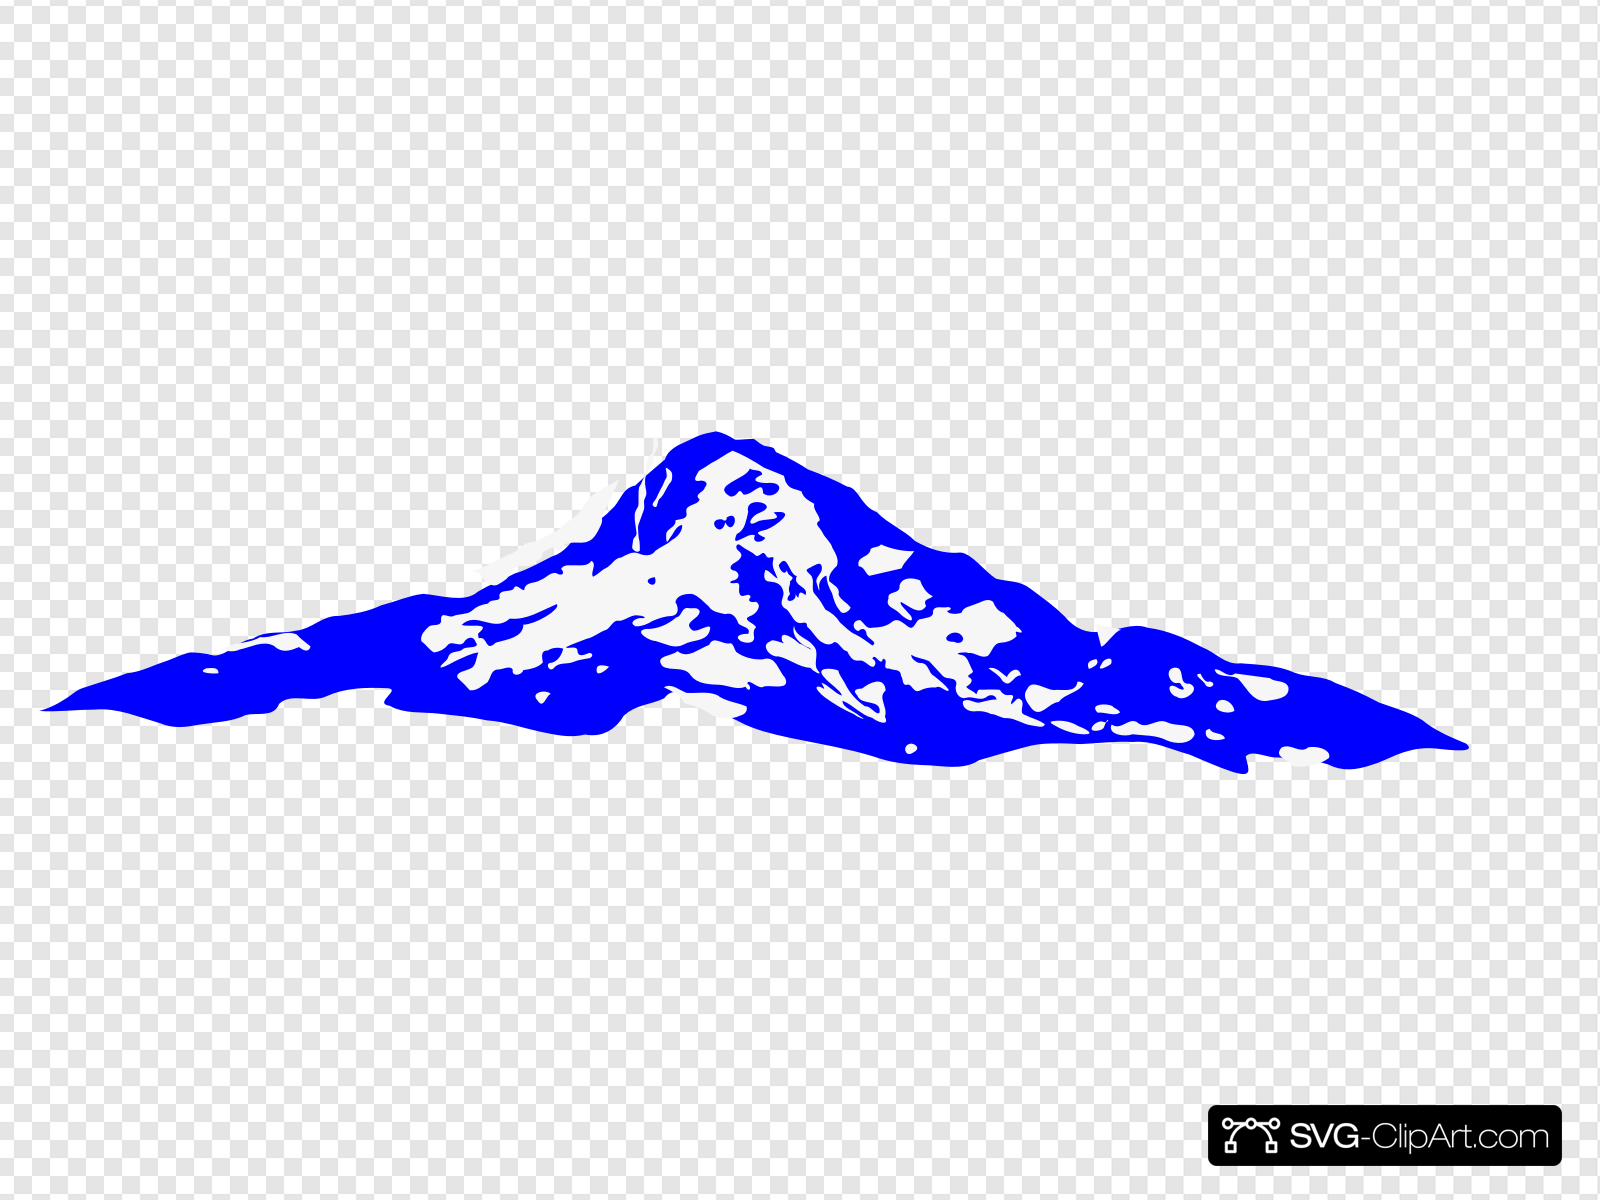 Mount rainier clipart